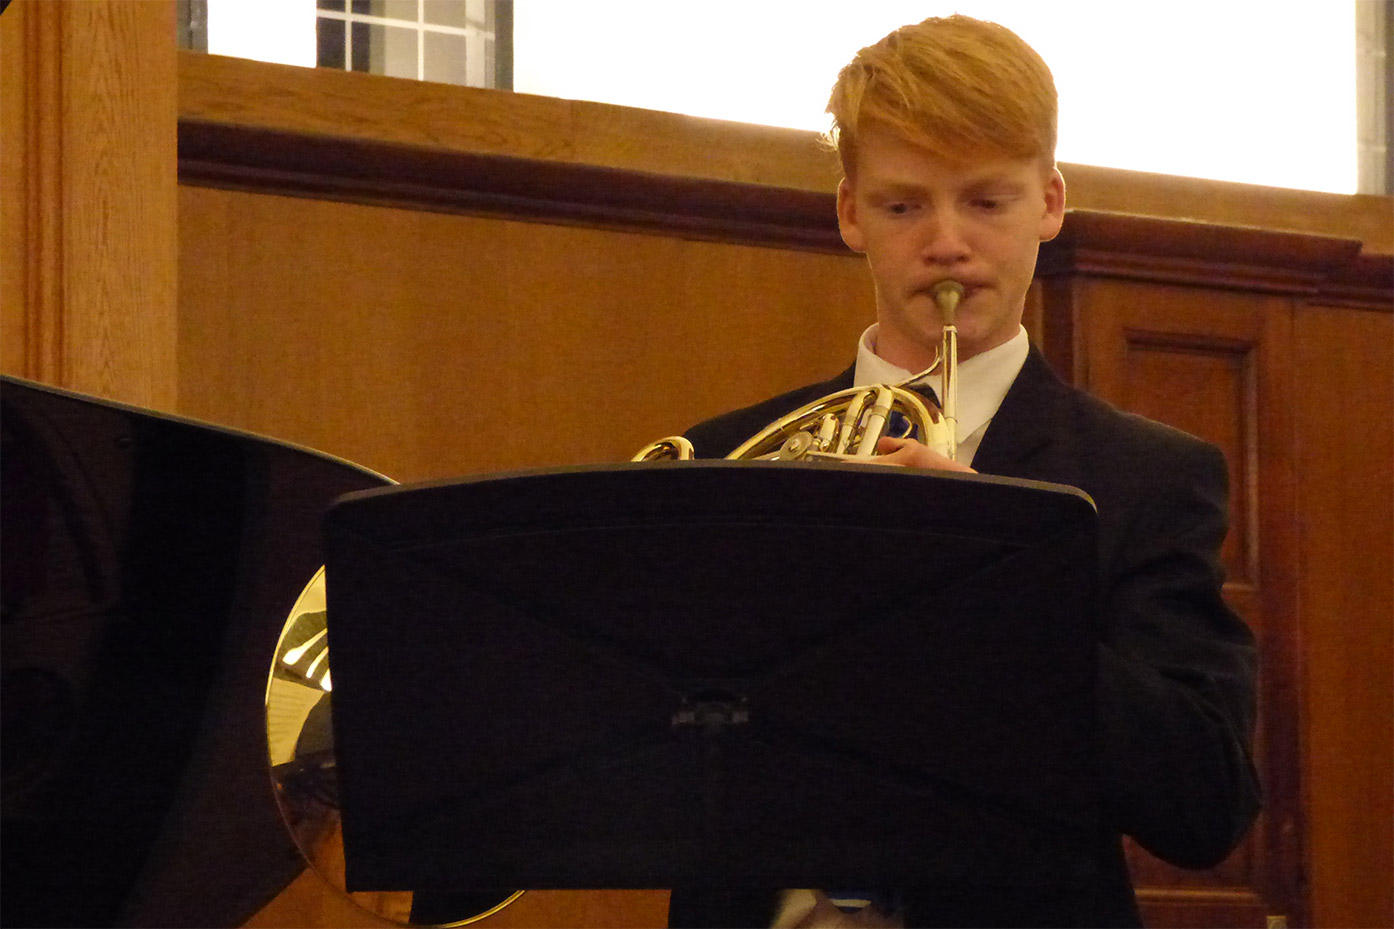 French Horn player wins Junior Royal Academy of Music prize